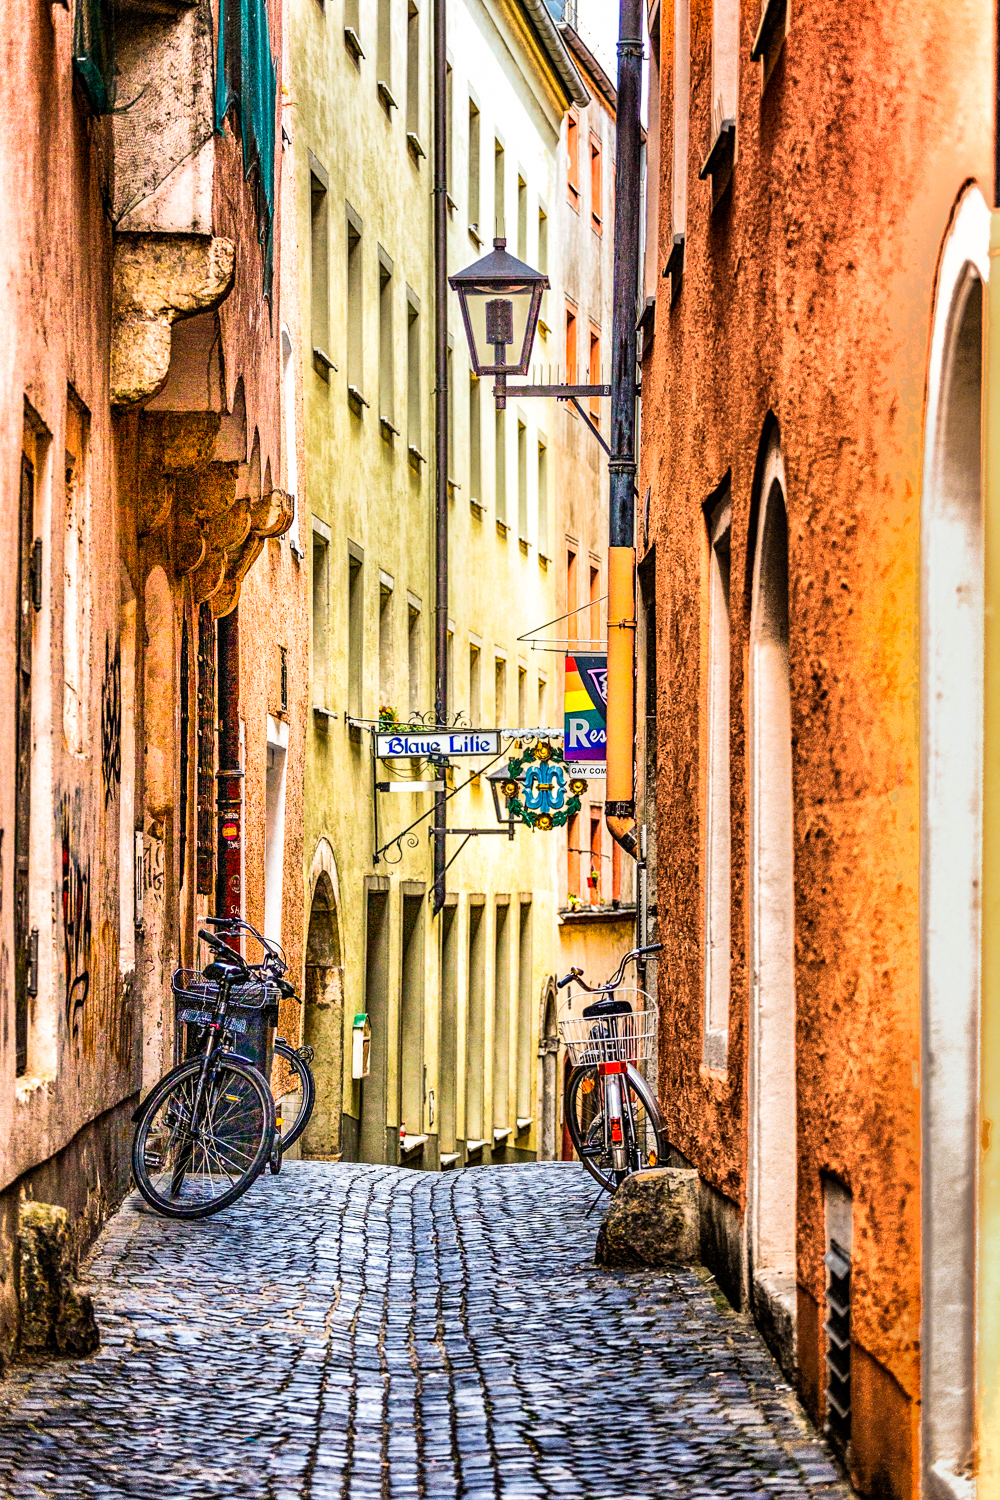 Bicycle Alley Regensburg, Germany